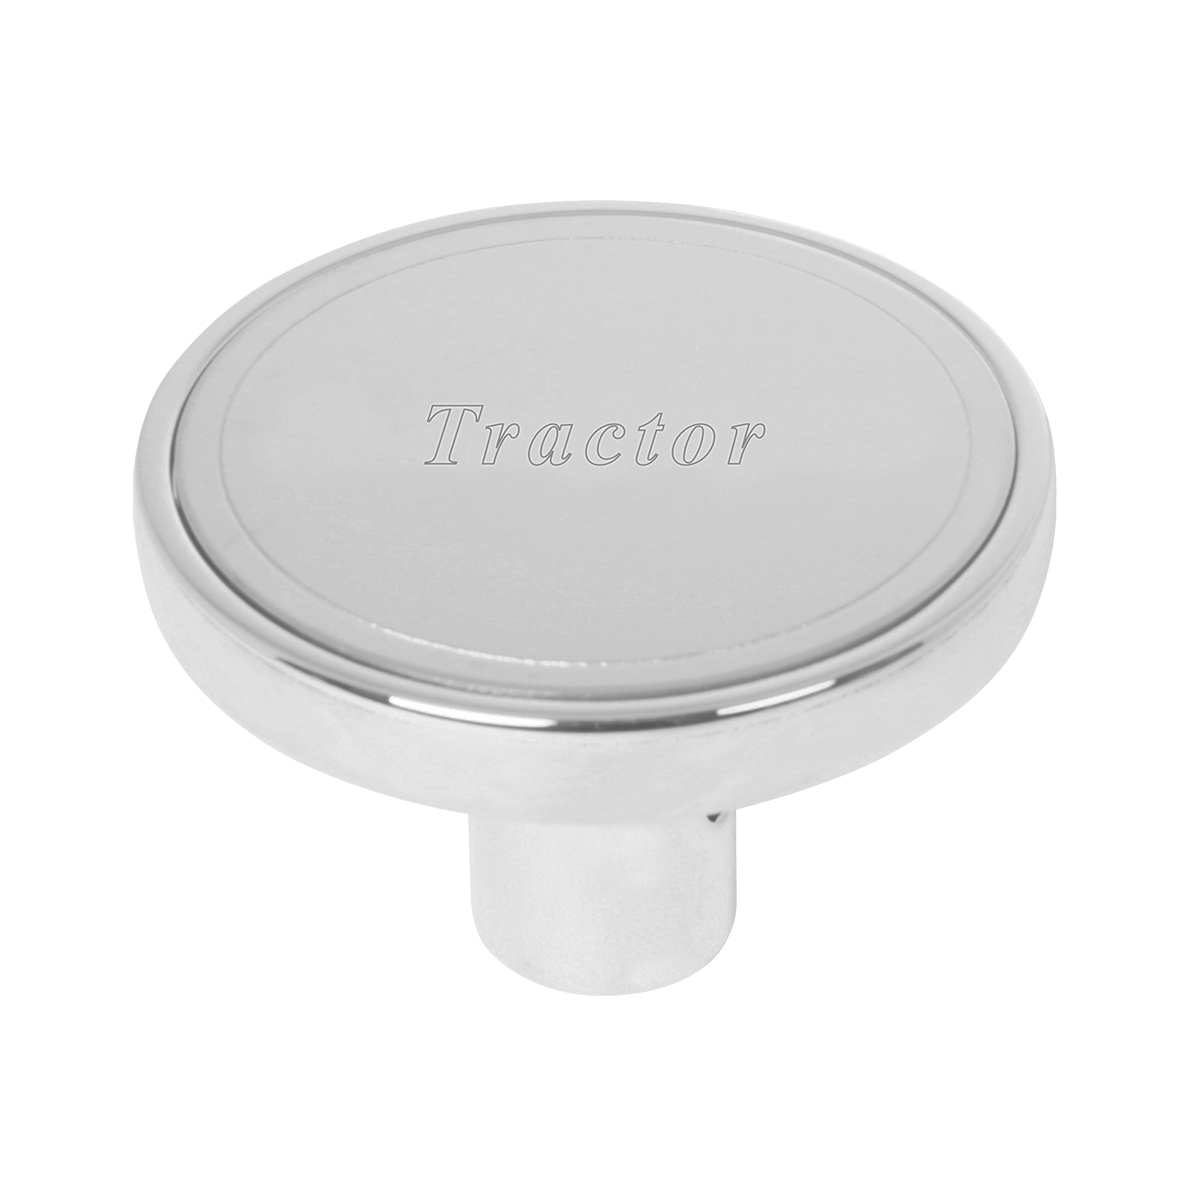 "#96227 Air Valve Control Knob w/Stainless Steel Plate (1 ¹⁵∕₁₆"" dia. x 1 ⁵∕₁₆"" (H) x ⅜"" I.D. ) - Tractor"